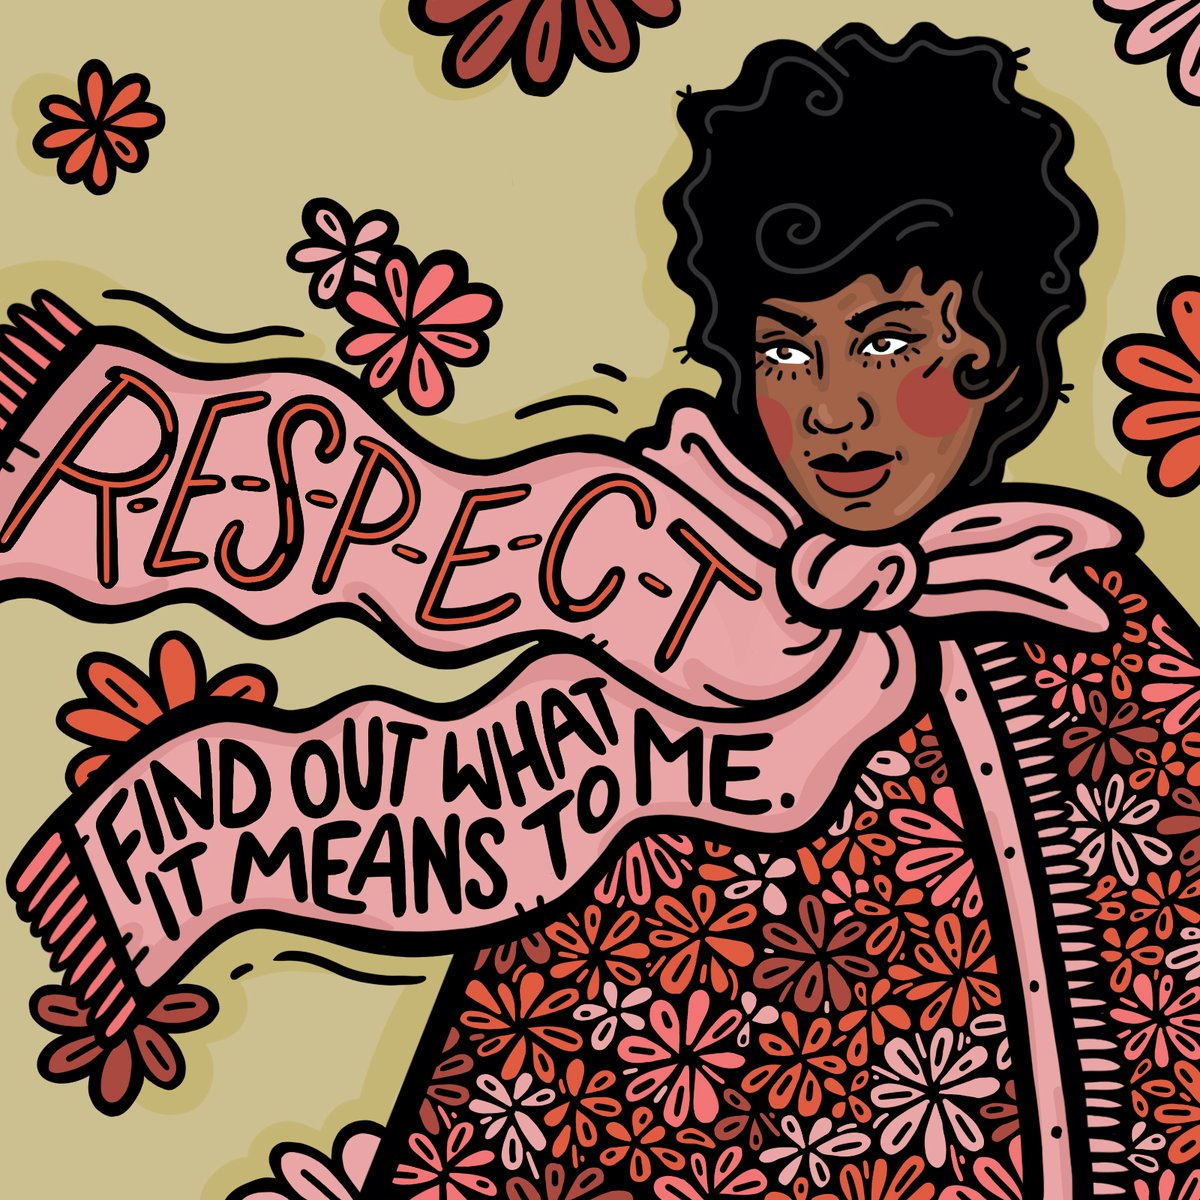 R-E-S-P-E-C-T Find out what it means to me! 👑 #InternationalWomensDay #IWD2020 #EachForEqual Art by: @bykellymalka